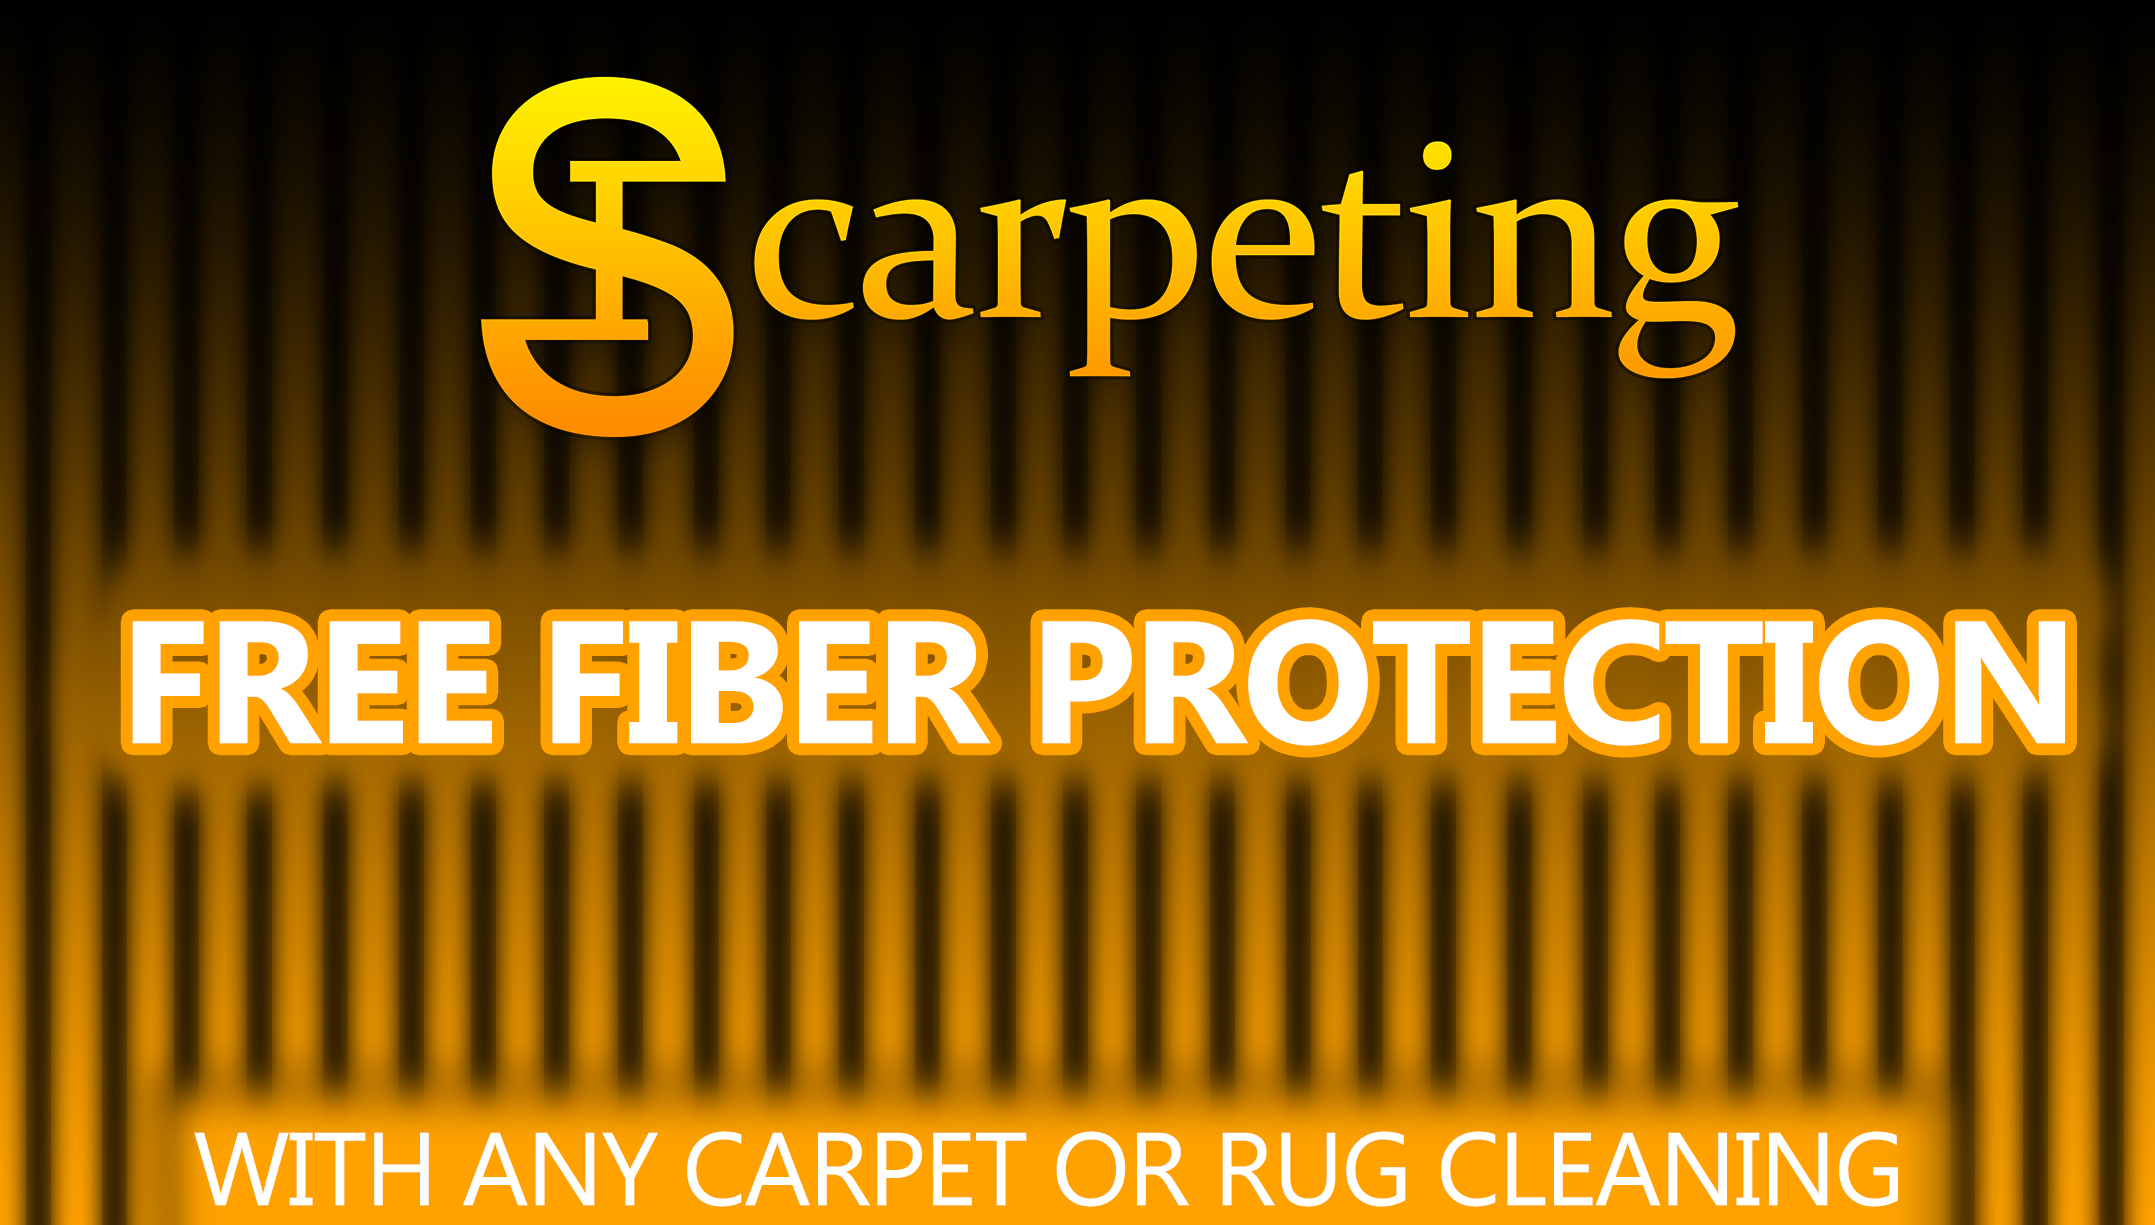 Free Fiber Protection Application With Any Carpet or Rug Cleaning